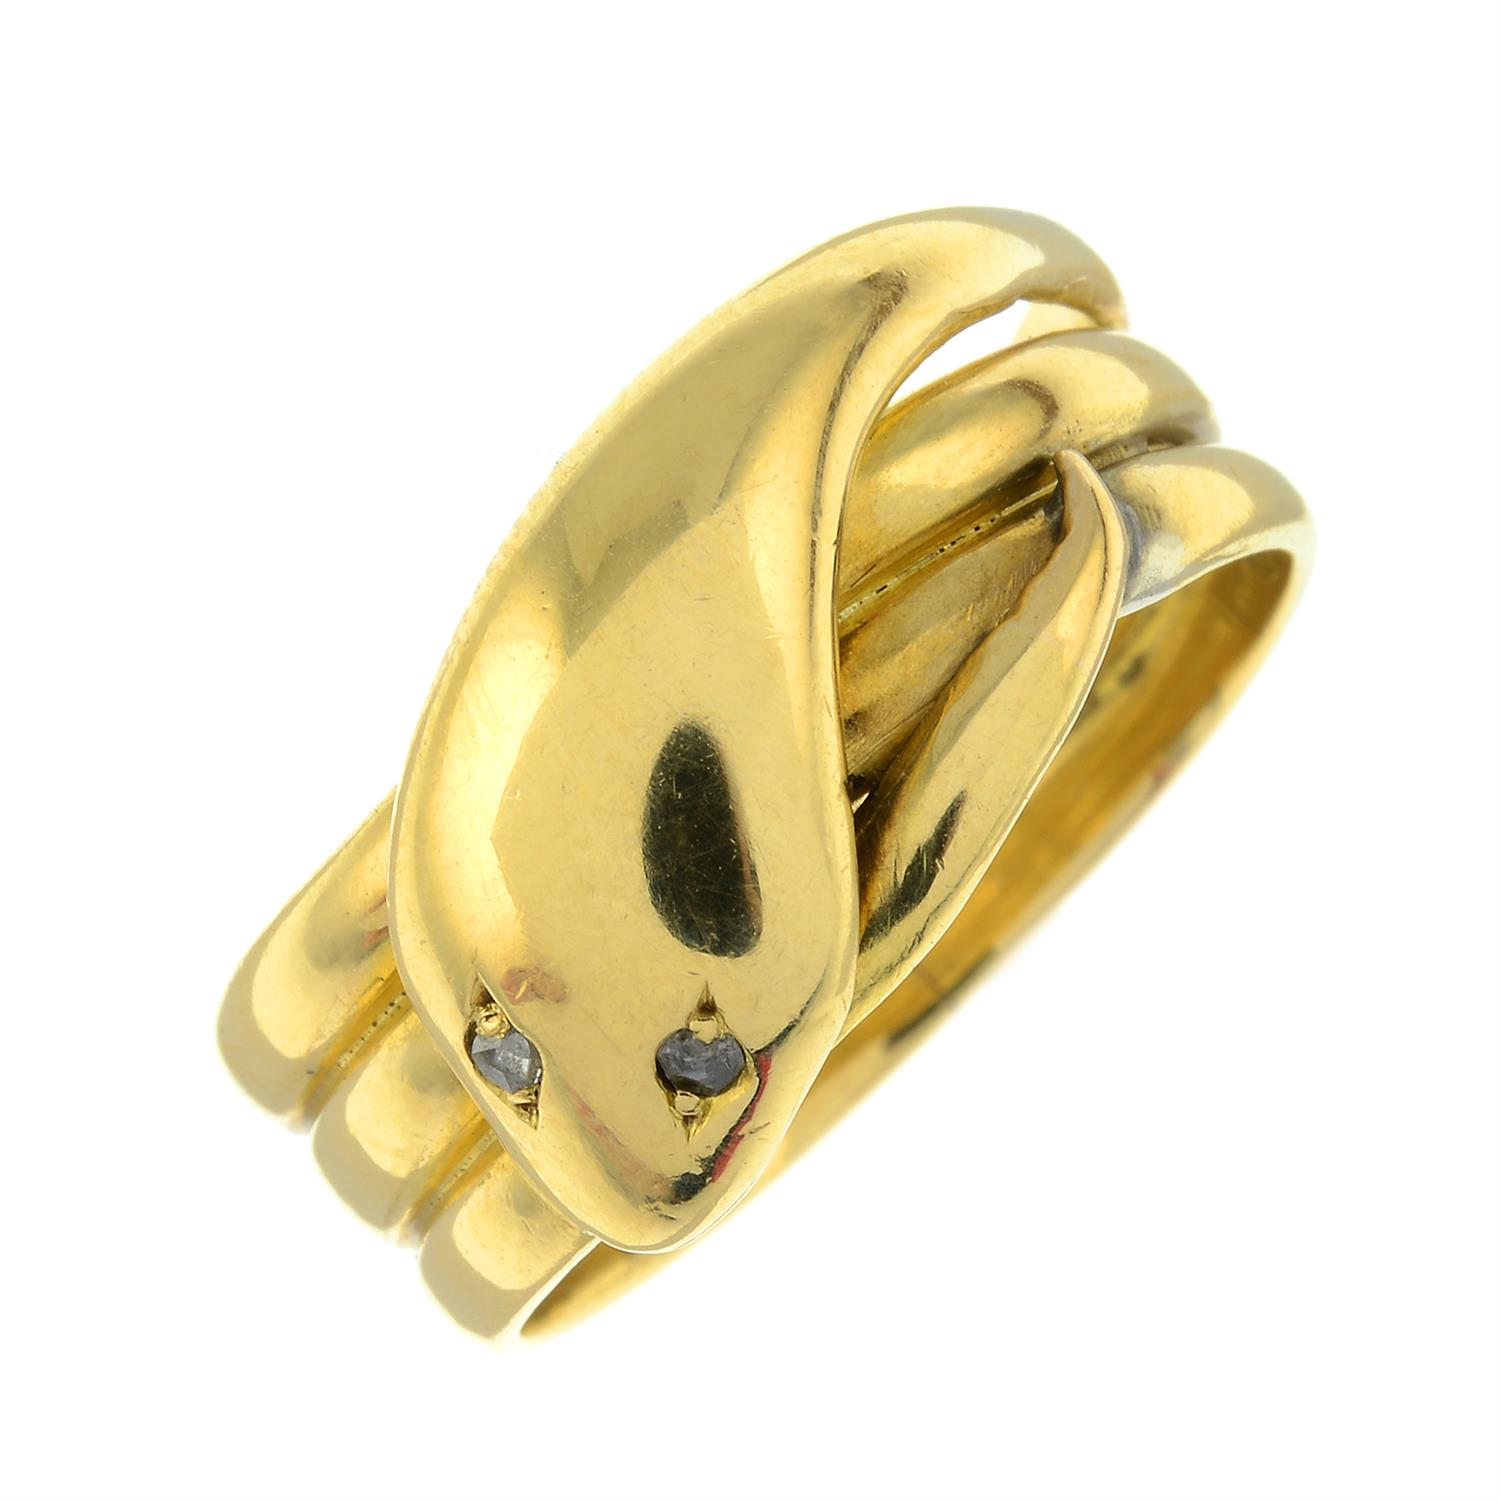 A late Victorian 18ct gold snake ring, with rose-cut diamond eyes.